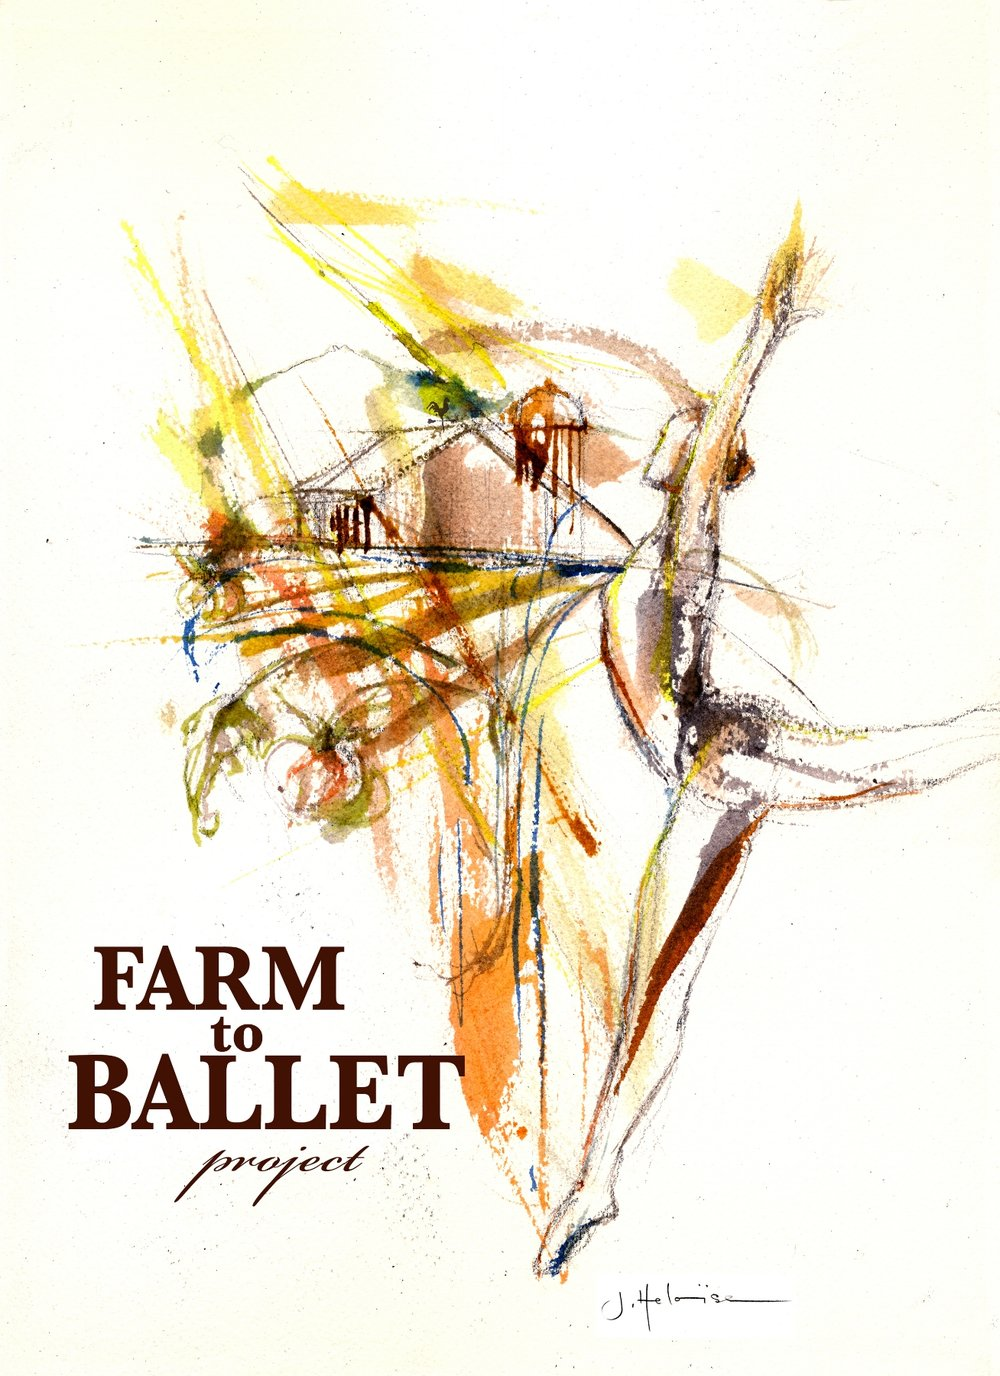 Farm to Ballet art by JHeloise